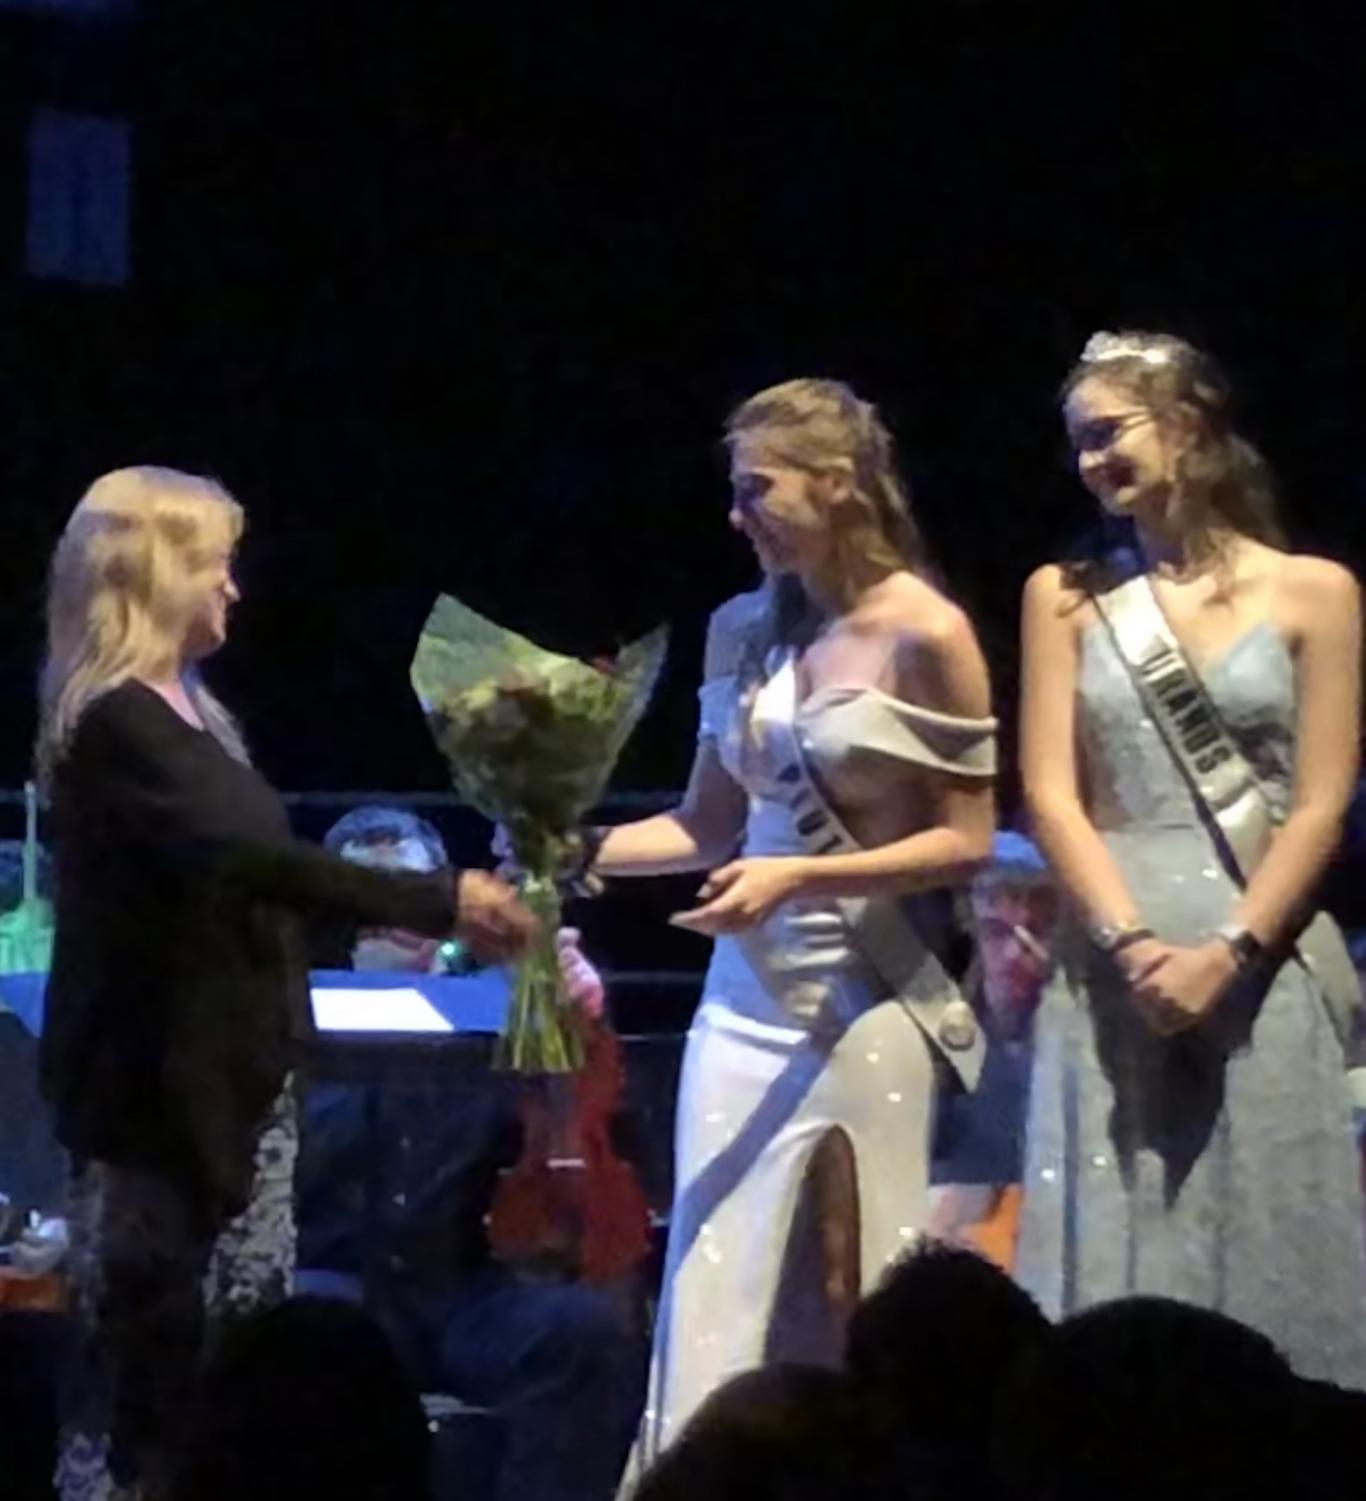 Strings consultant Laura Pinfield receives flowers at orchestra concert